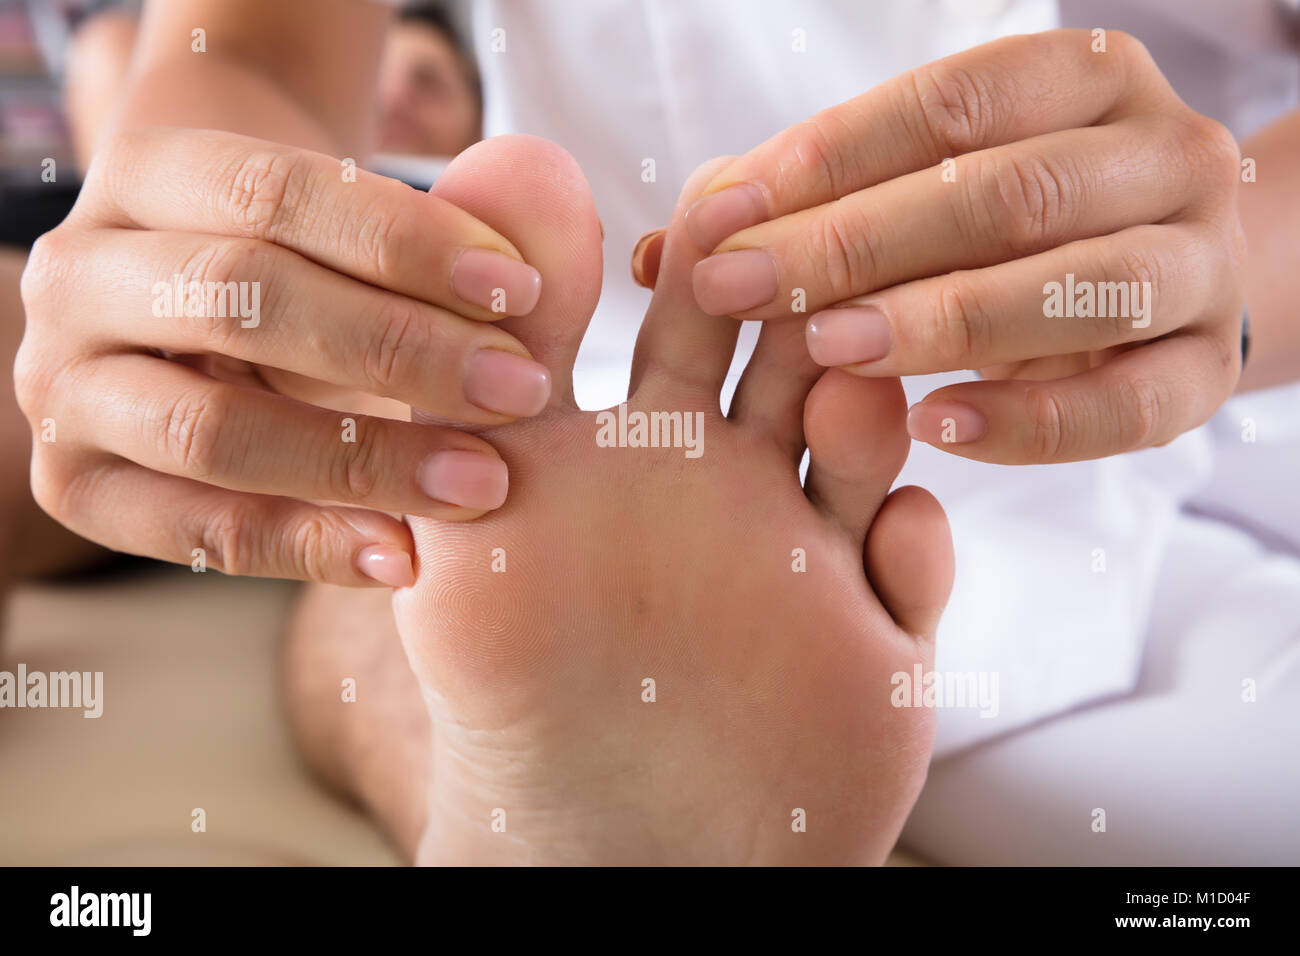 Close-up Of A Therapist's Hand Treating Person's Foot In Clinic - Stock Image